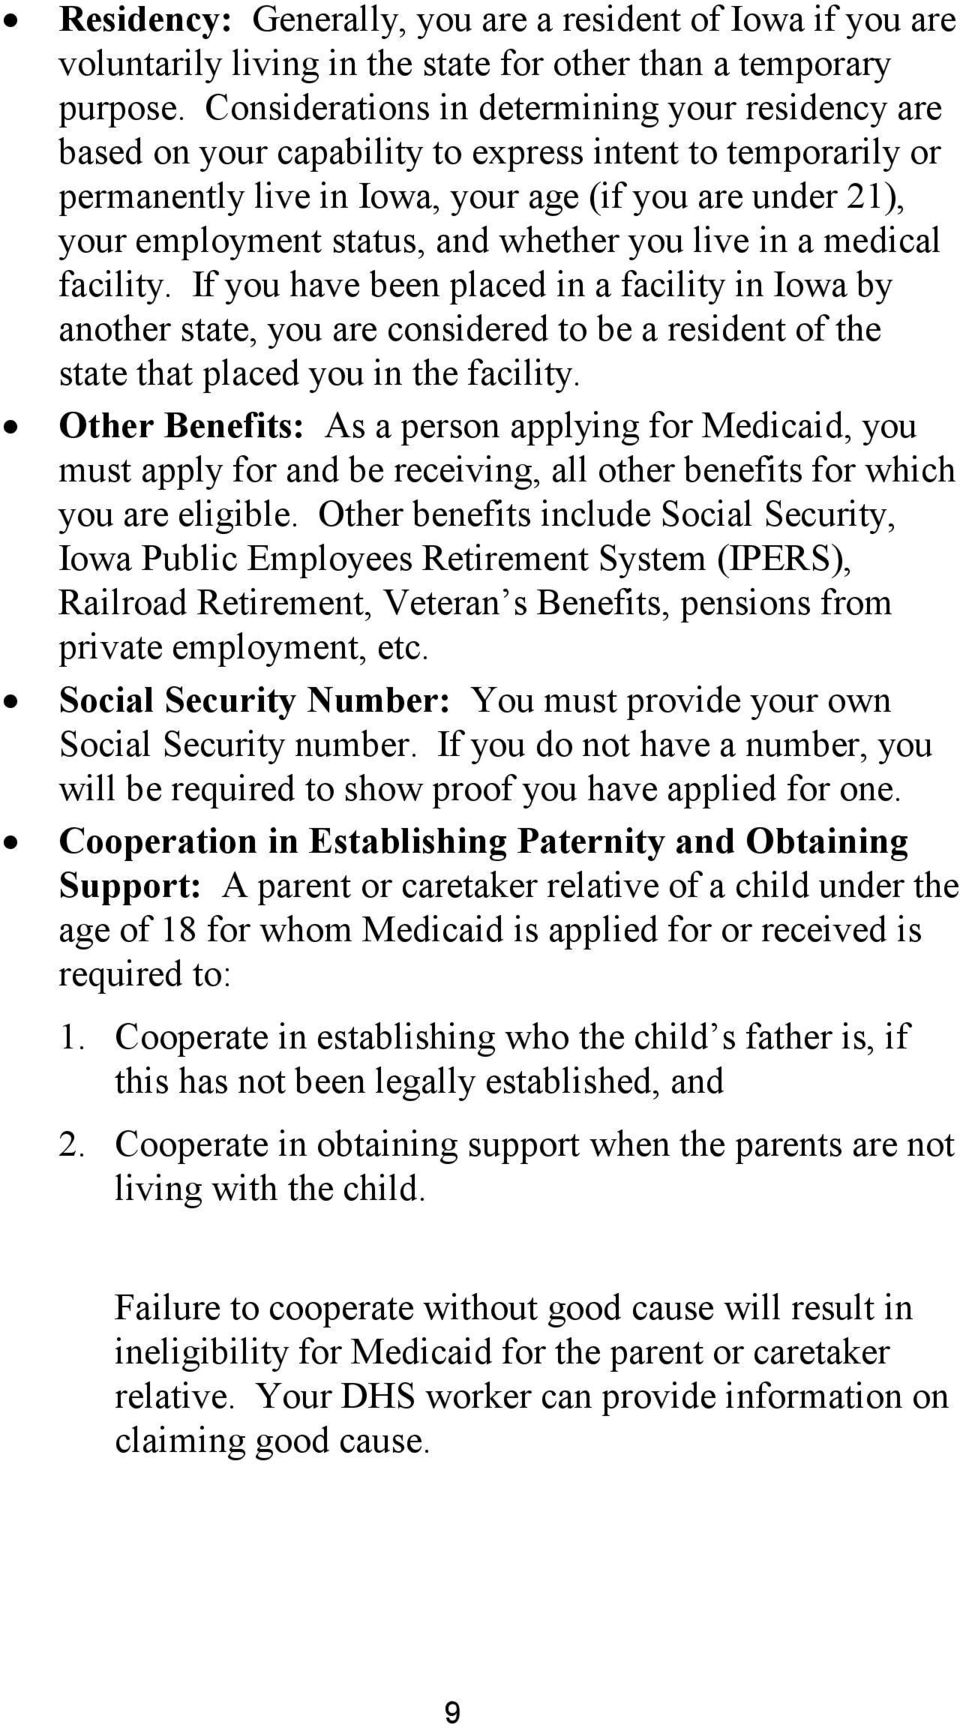 whether you live in a medical facility. If you have been placed in a facility in Iowa by another state, you are considered to be a resident of the state that placed you in the facility.